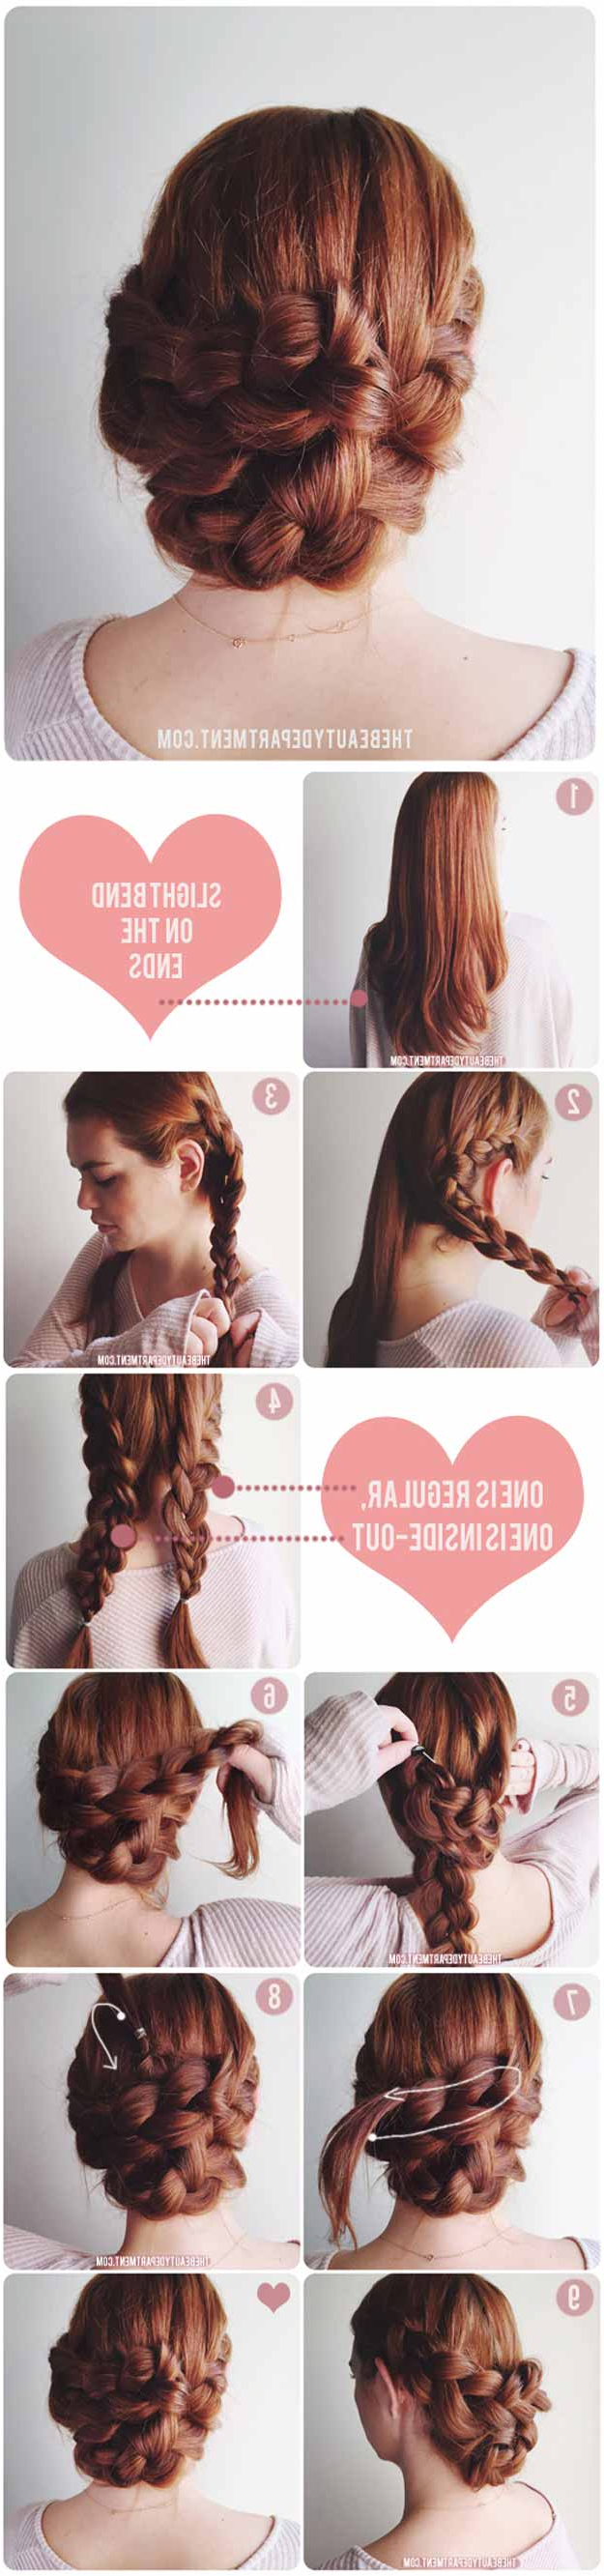 2017 Simple And Cute Wedding Hairstyles For Long Hair For 31 Wedding Hairstyles For Long Hair – The Goddess (View 8 of 20)